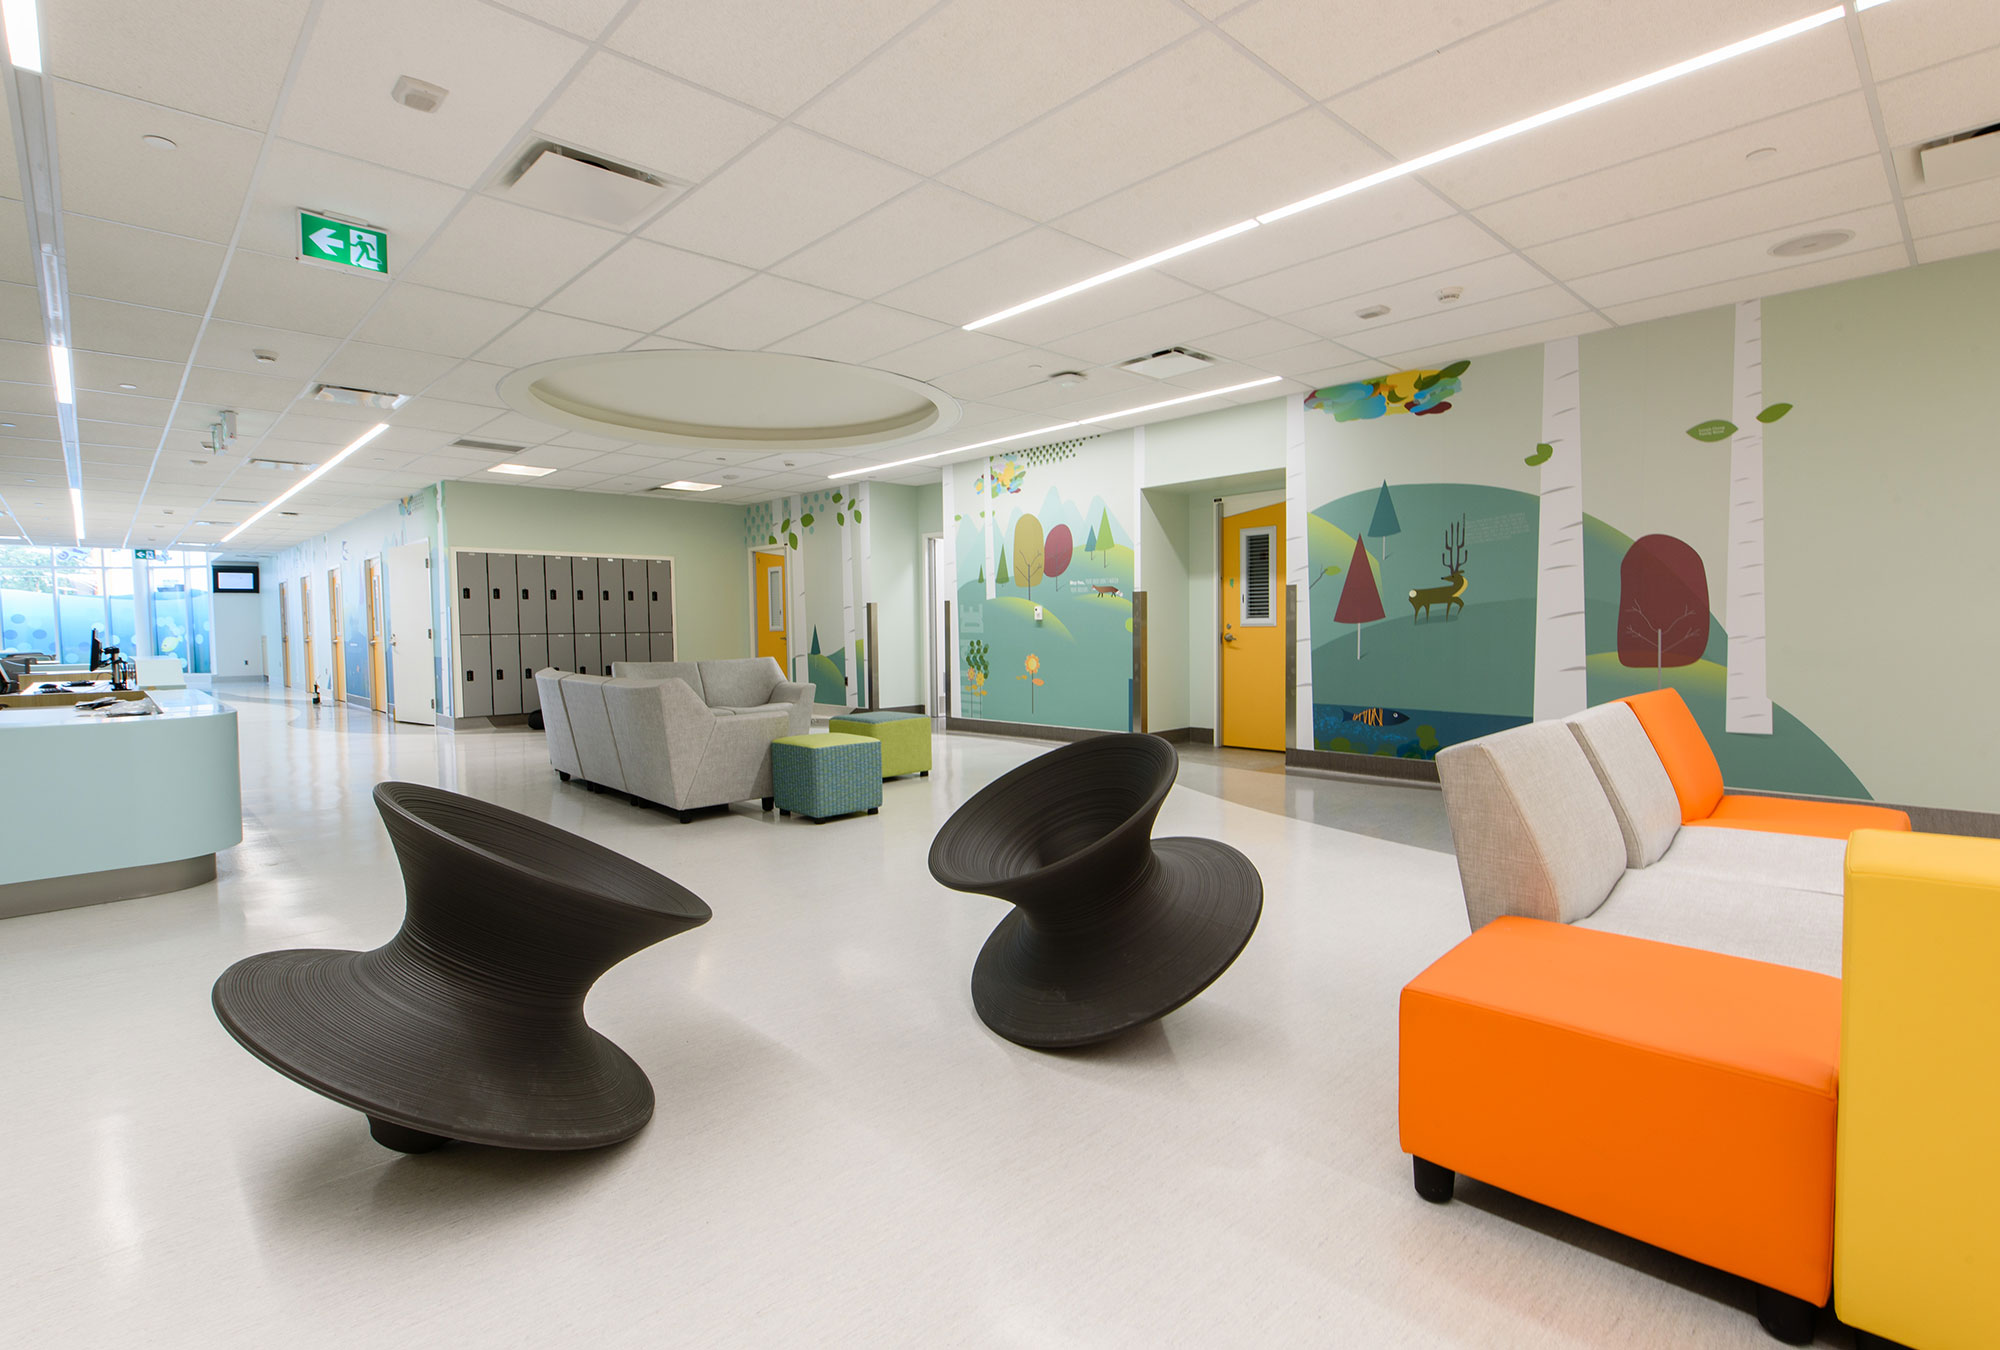 Clean and playful institutional wall graphics